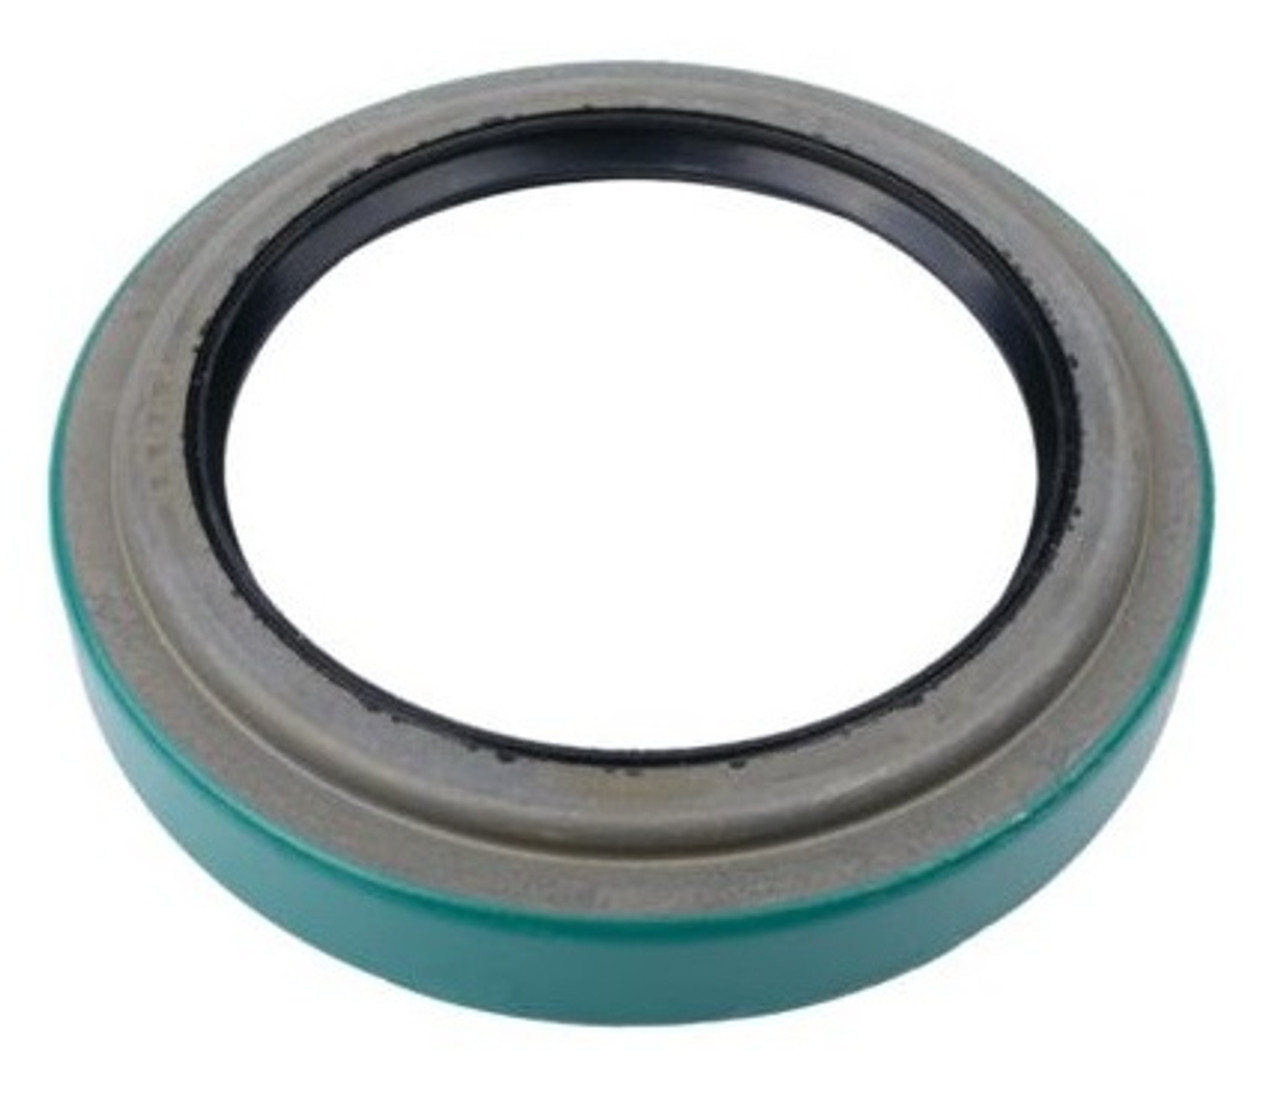 6379, Chicago Rawhide Replacement Oil Seal by TCM